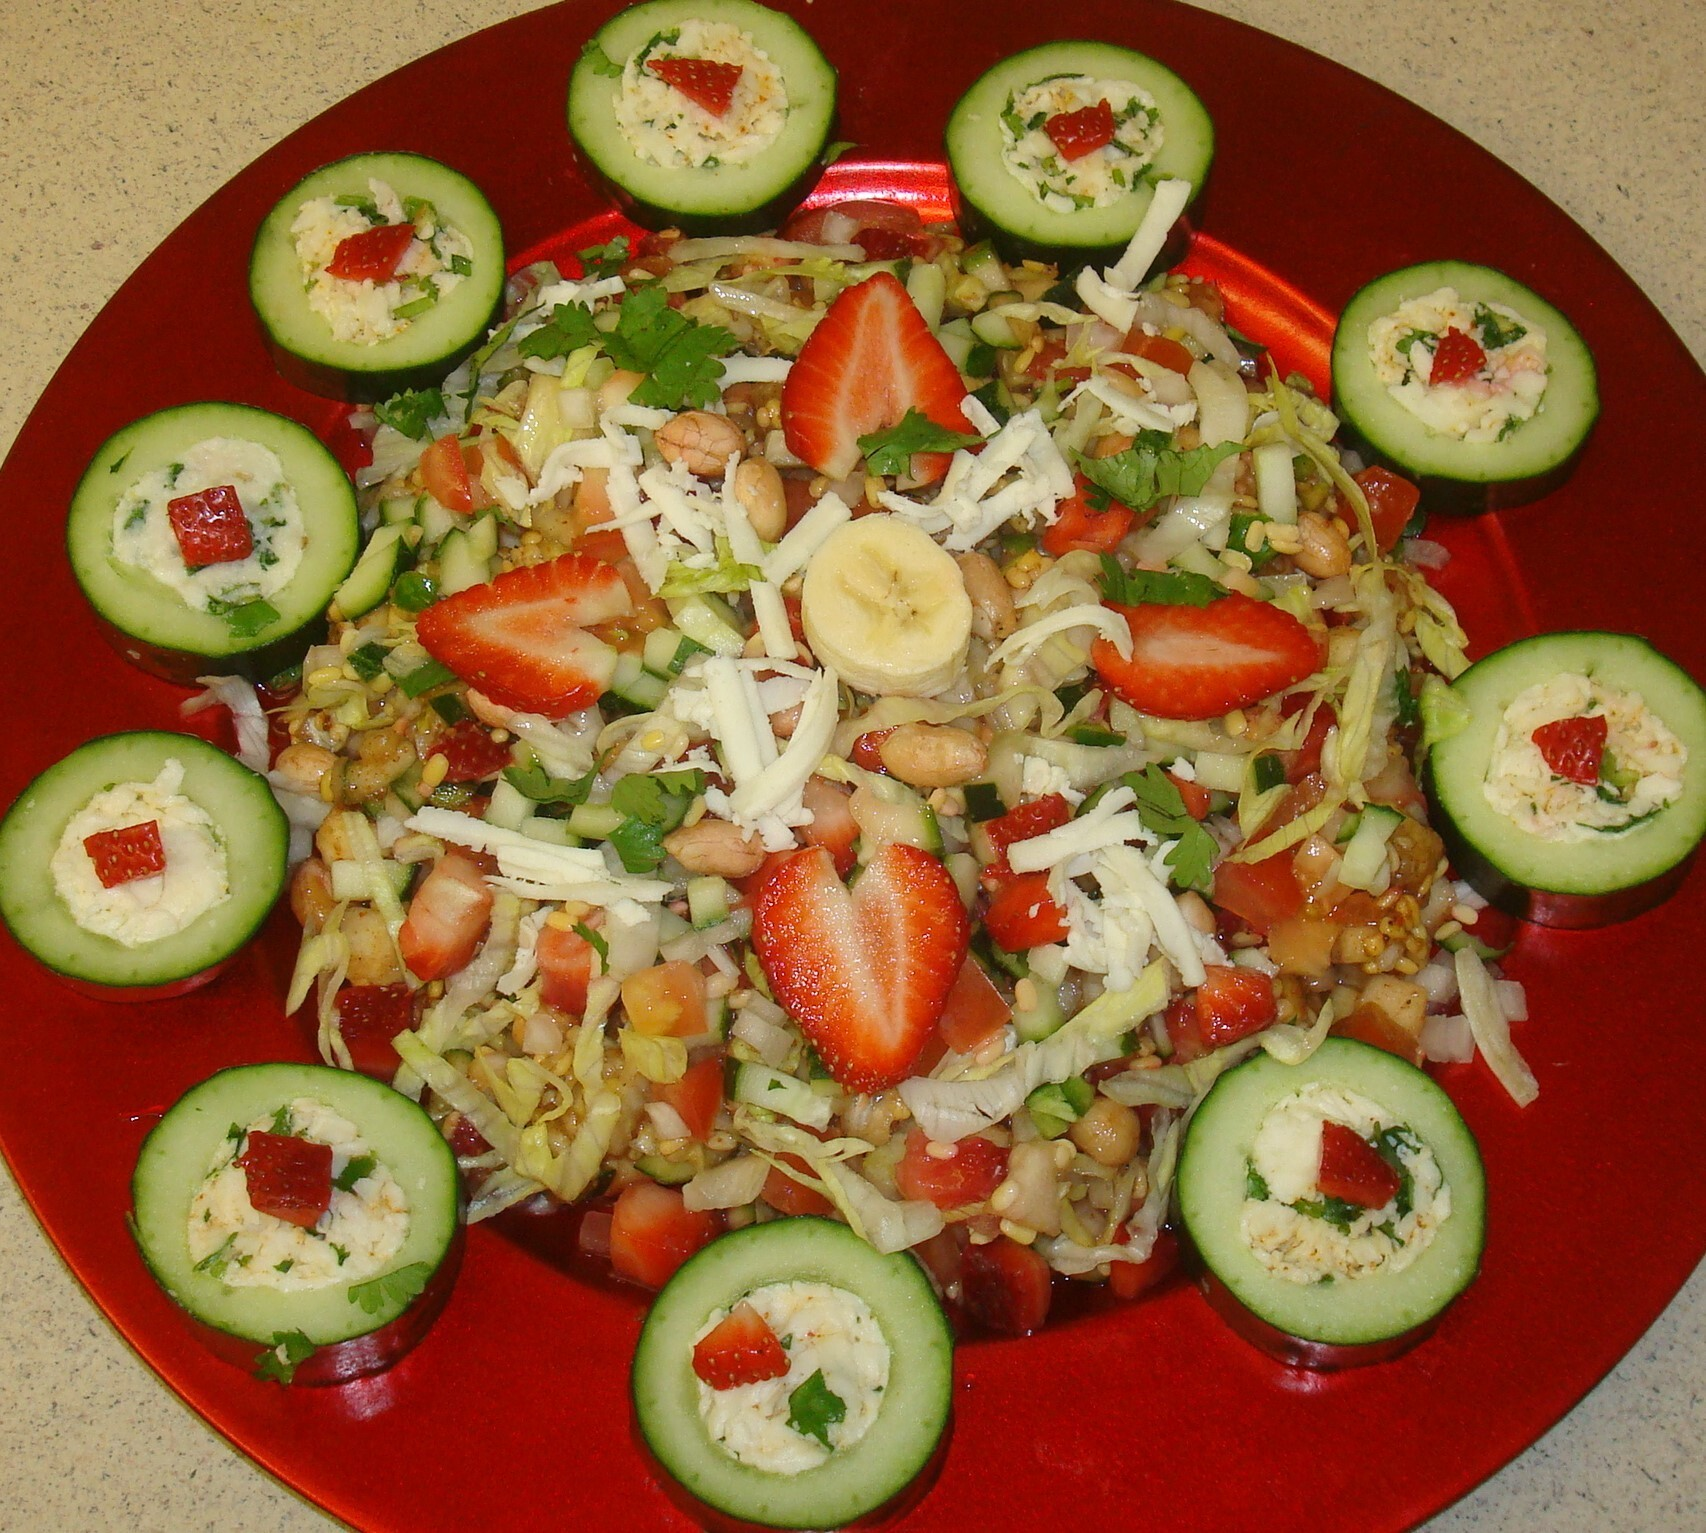 Cucumber Salad with peanuts